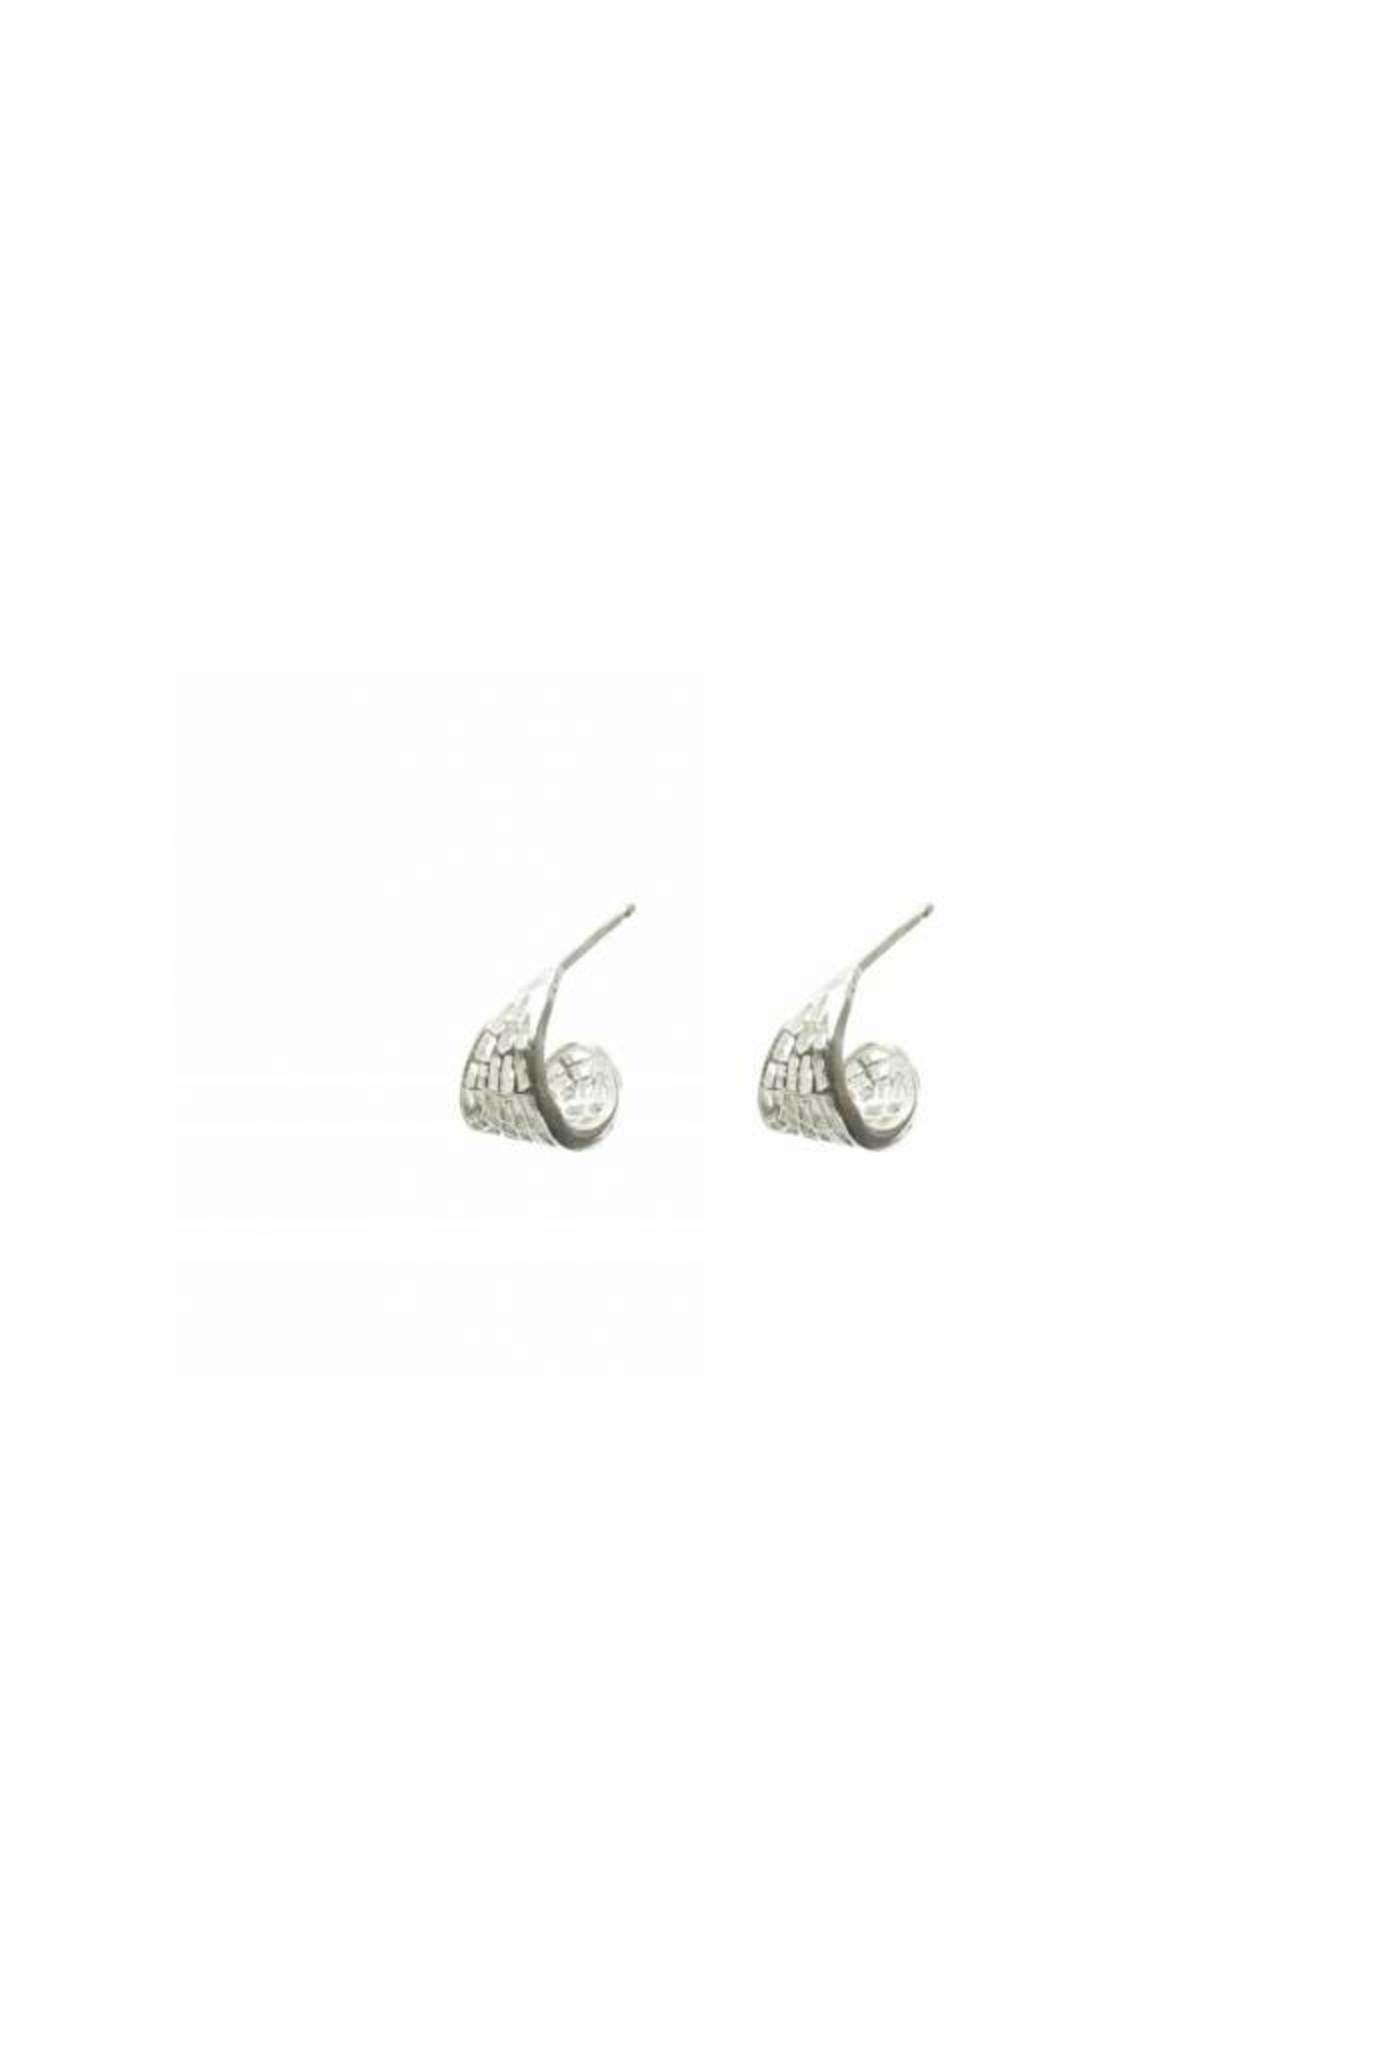 firefly earrings silver